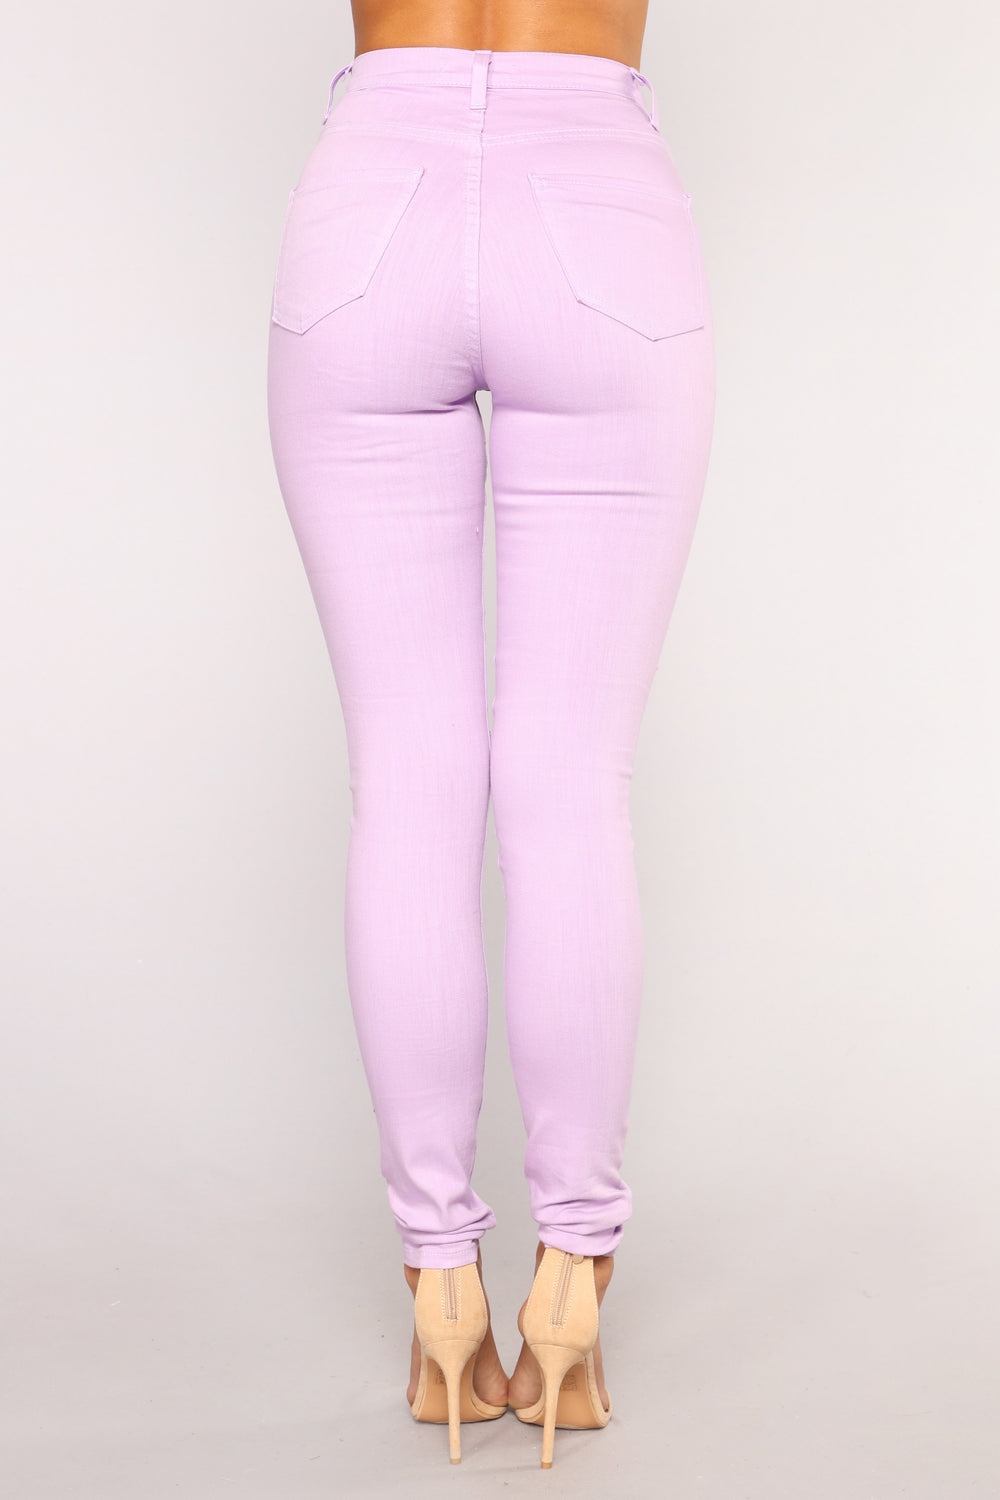 Roll Out Jeans - Lavender